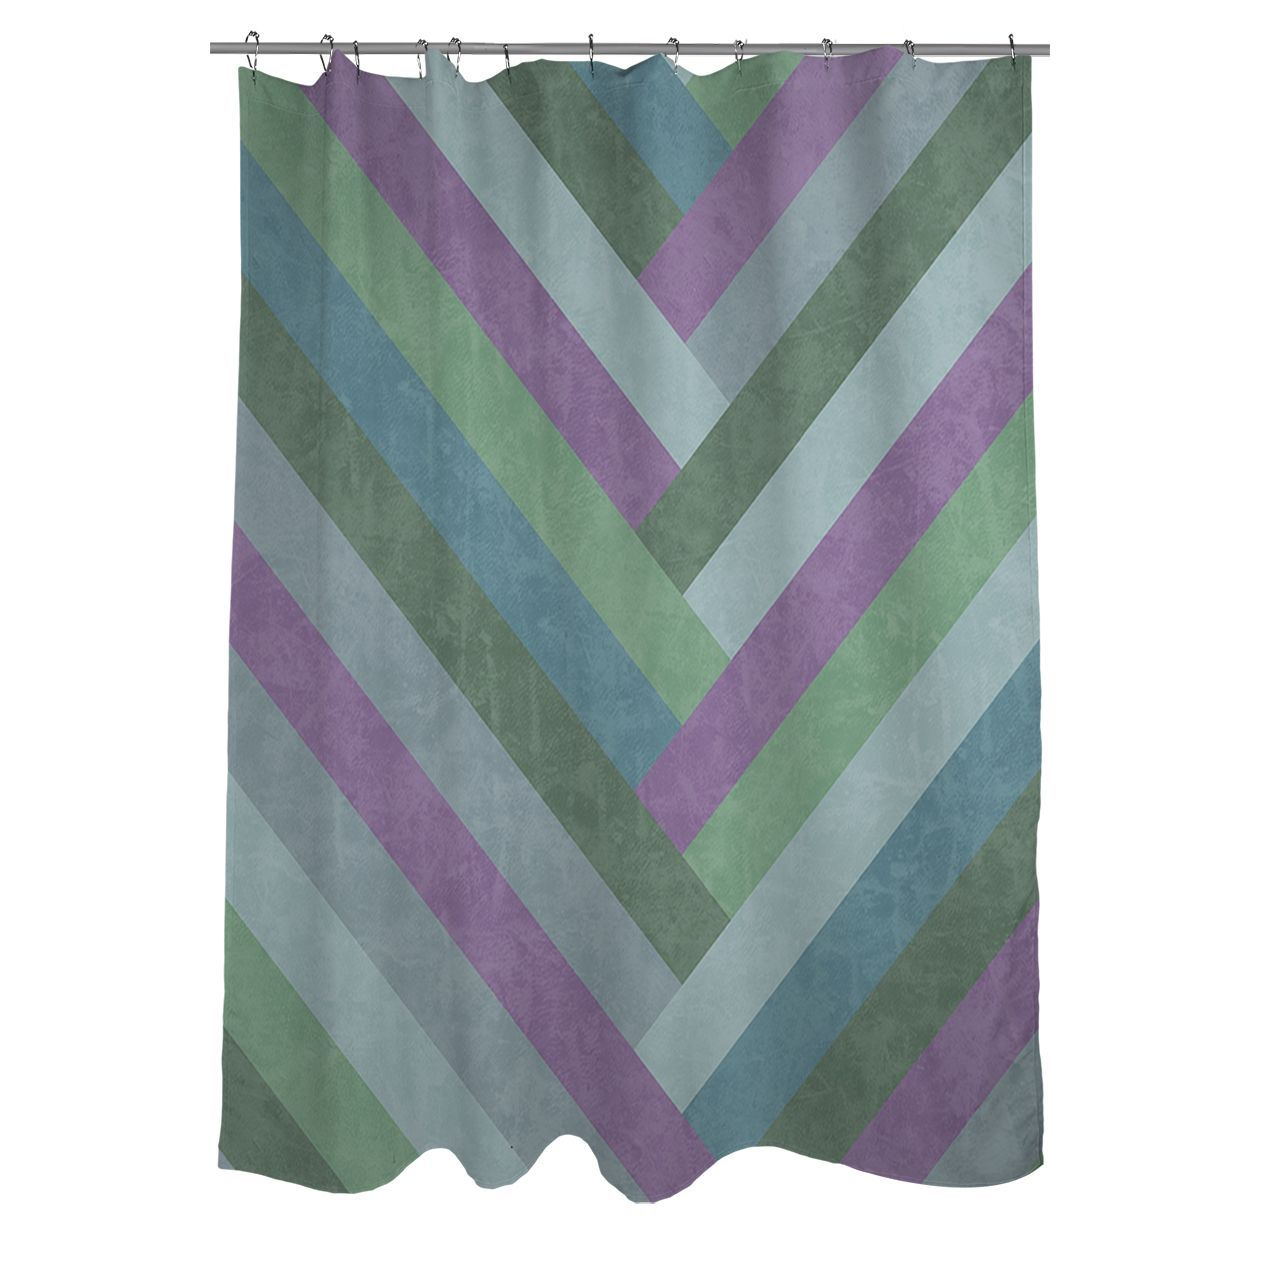 Featuring A Chevron Design In Lovely Muted Shades This Thumbprintz Shower Curtain Adds Contemporary